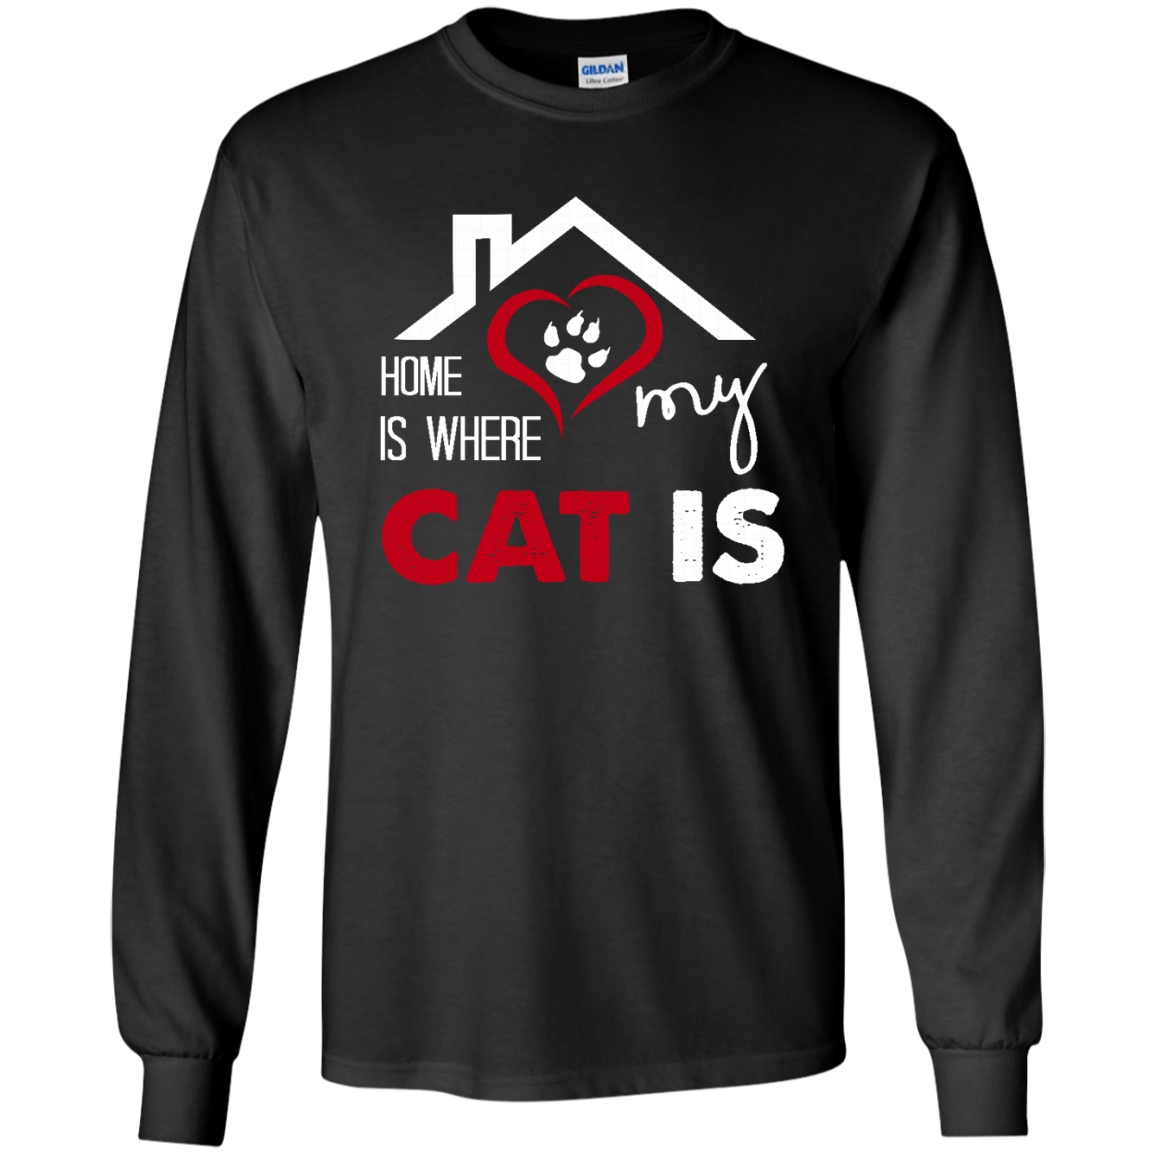 Cat Long Sleeve T shirt Home is Where My Cat Is like as a gift for who loves Cat  yourself  friends on birthday  christmas or Occasions